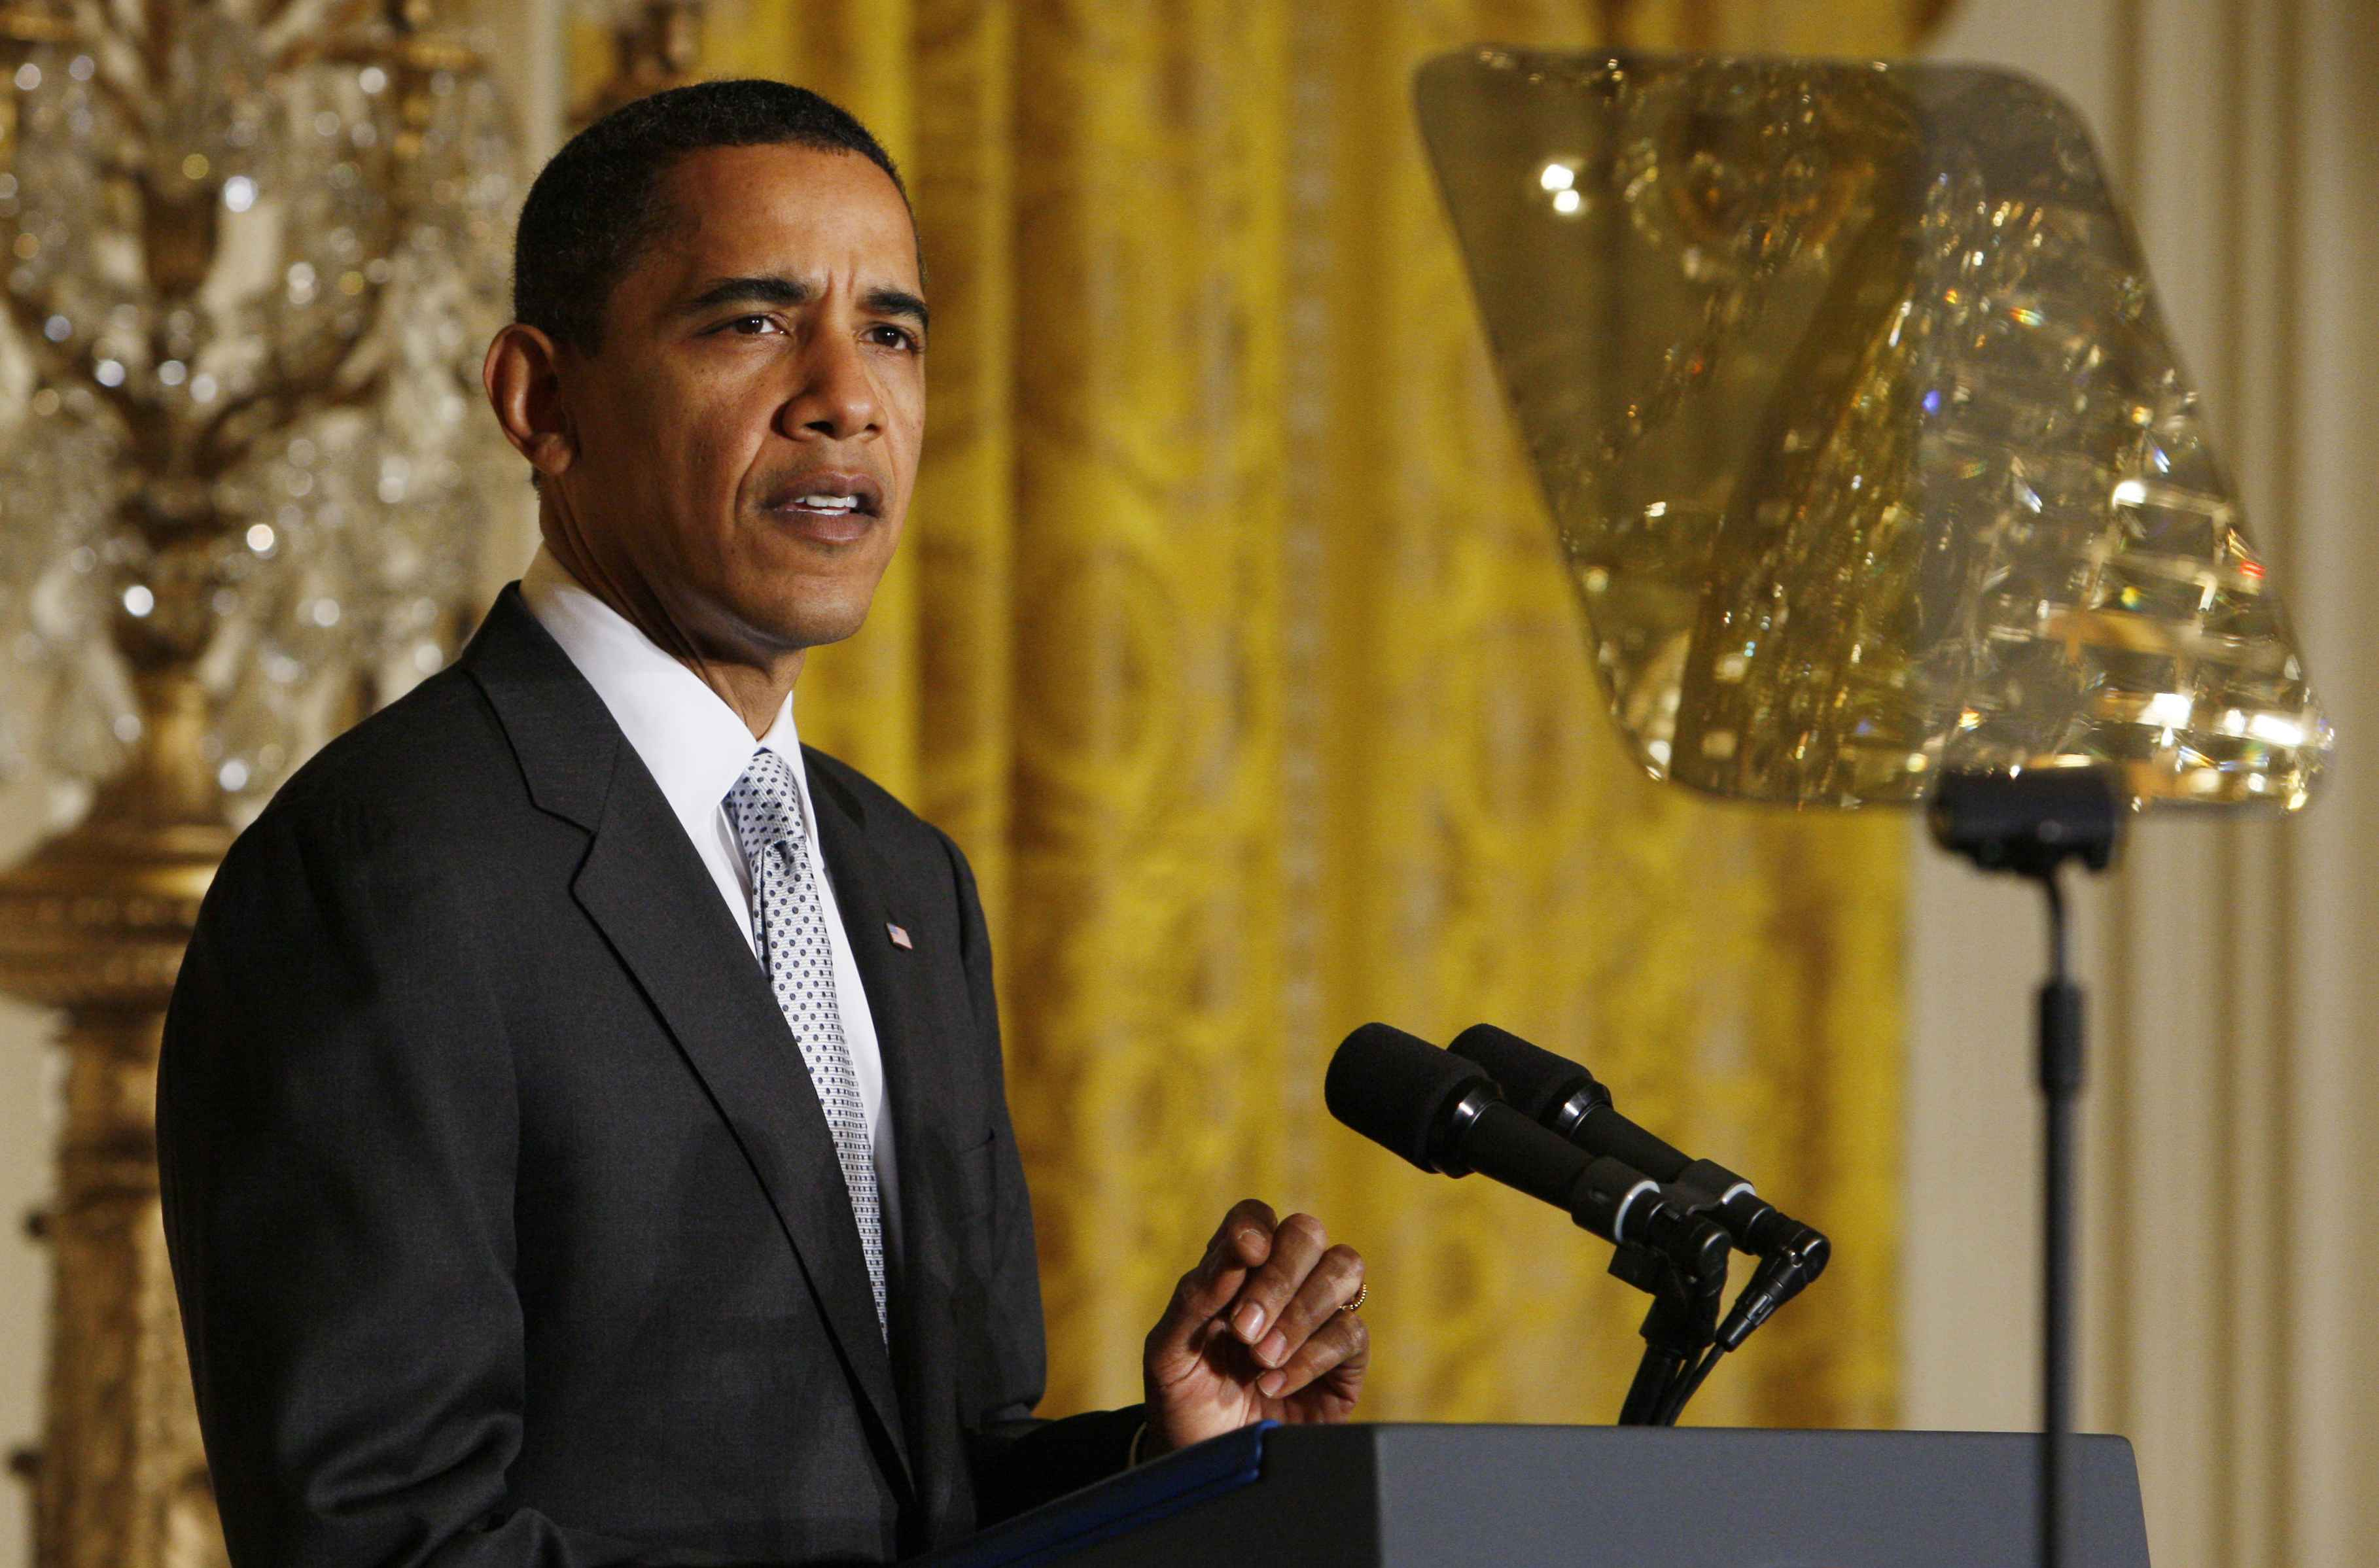 President Obama and his trusty teleprompter - can't speak with out it. (AP Photo/Charles Dharapak)